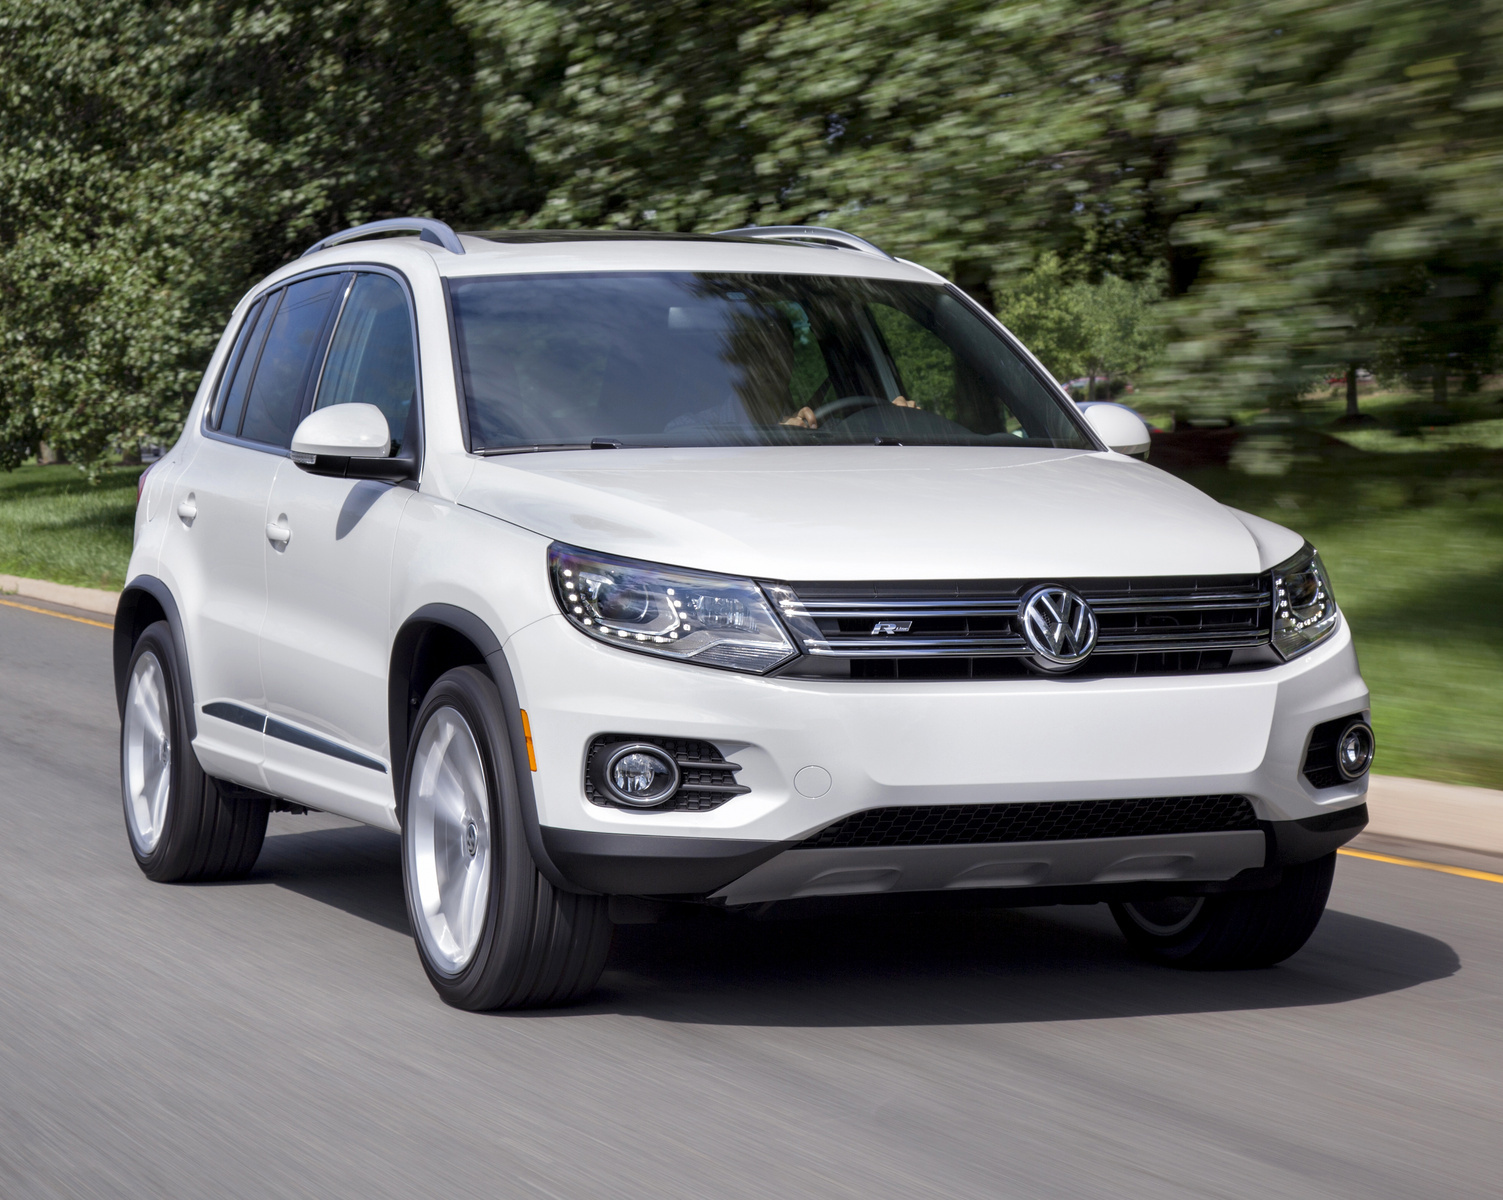 autotrader ca options reviews photos price tiguan trims specs volkswagen research